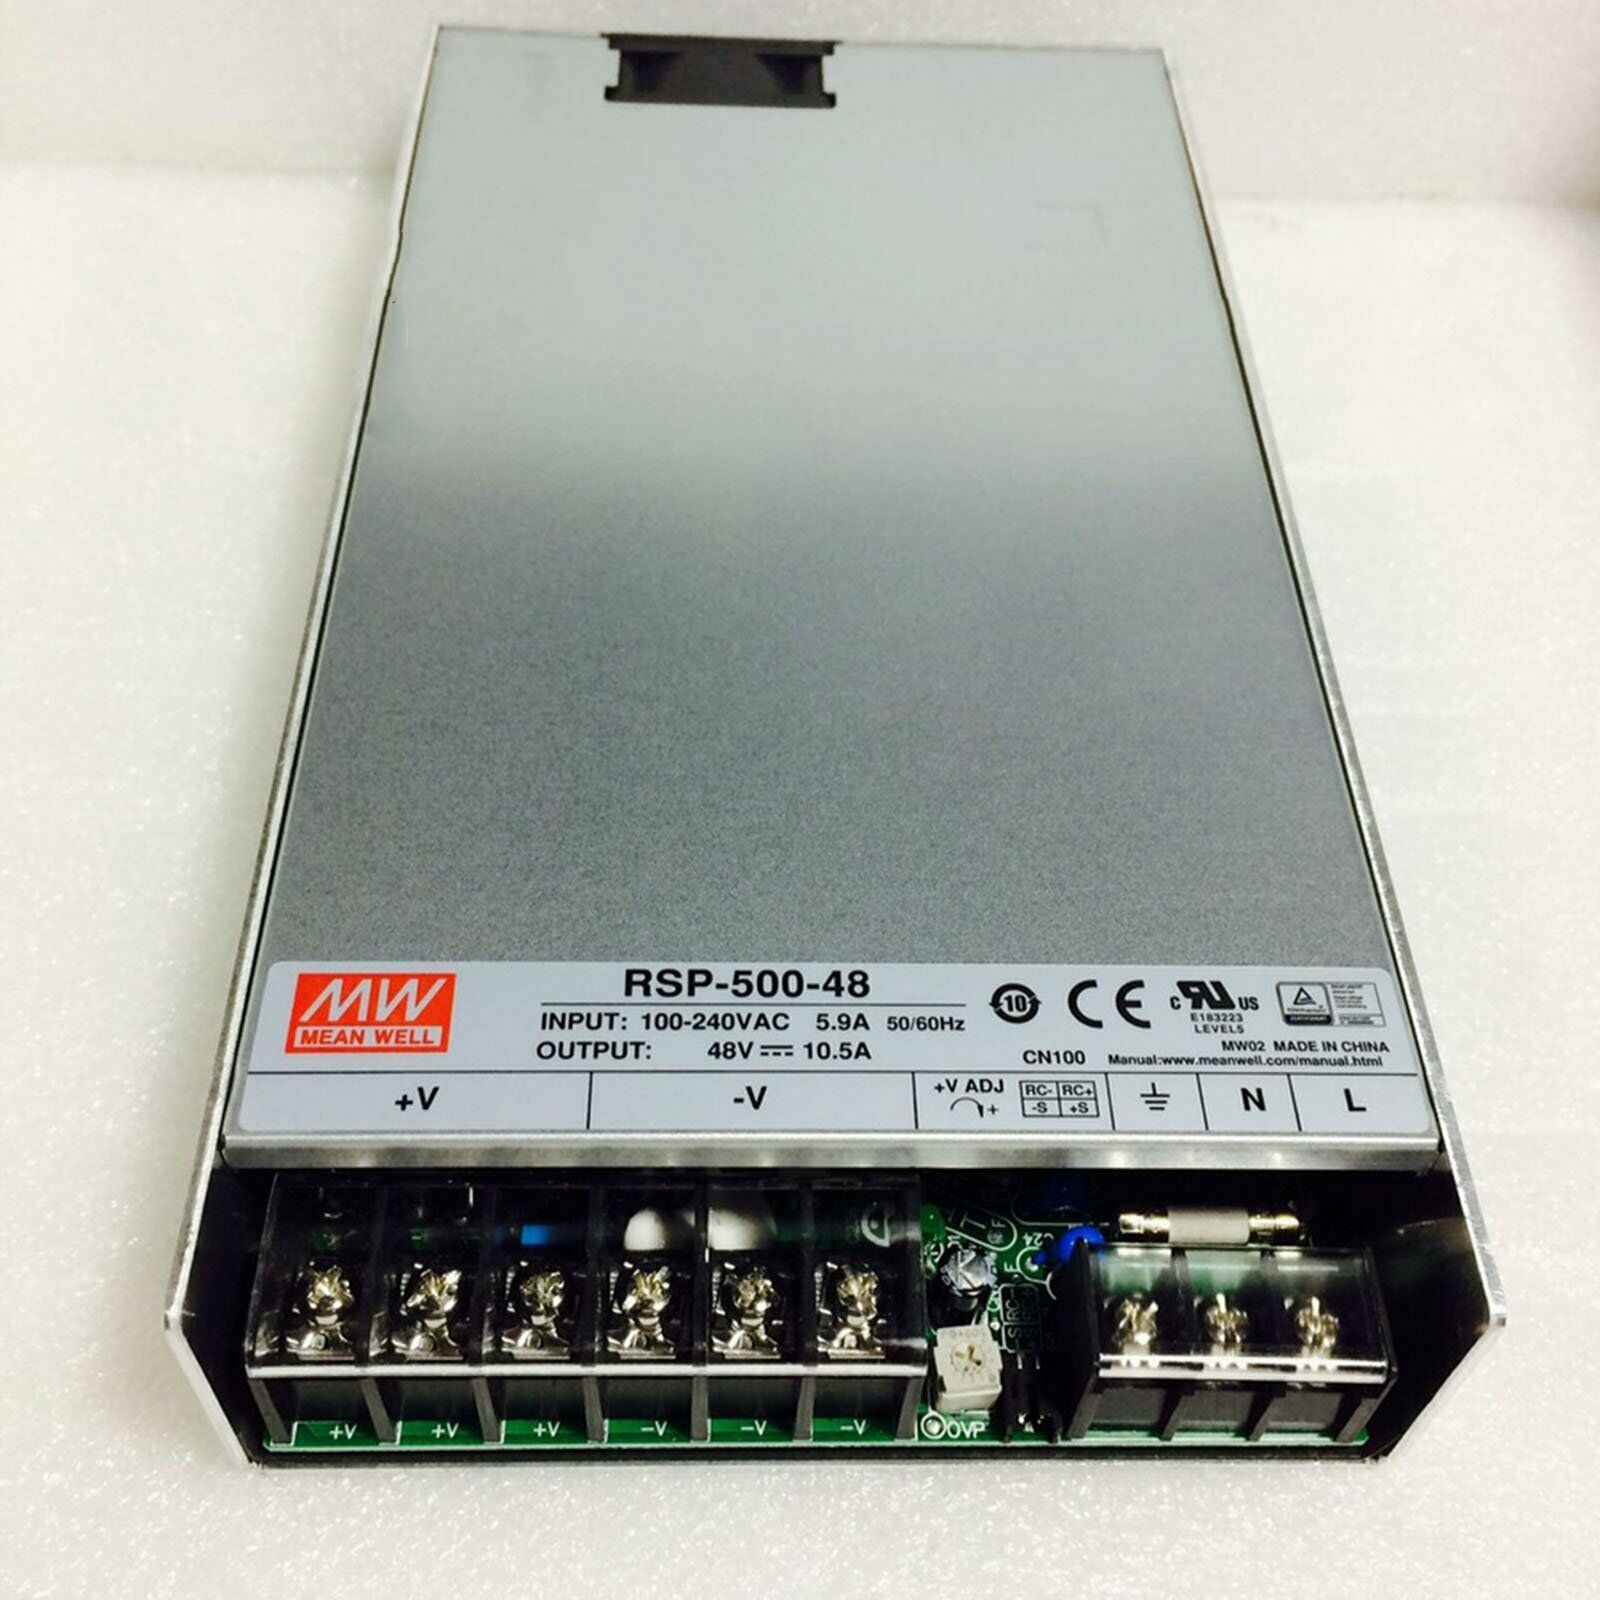 1PC New MEAN WELL RSP-500-48 replace SP-500-48 Switching Power Supply